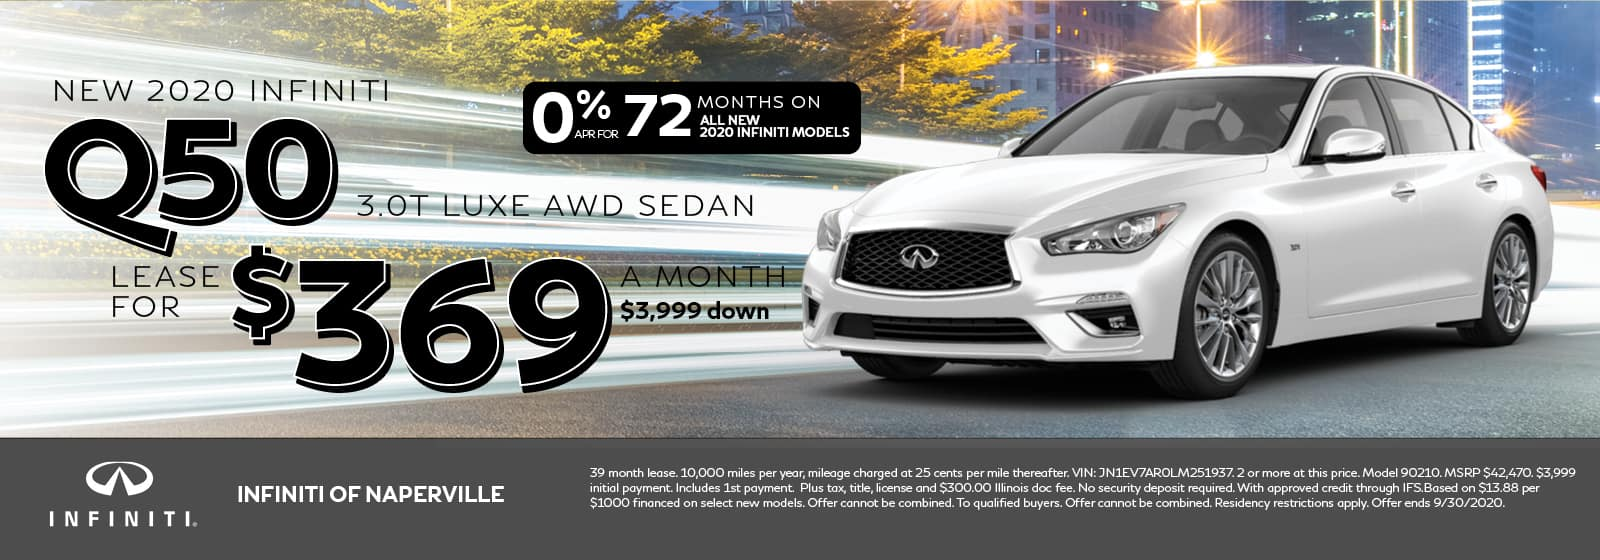 2020 INFINITI Q50 lease offer, $369/mo for 72 Months | Naperville, IL